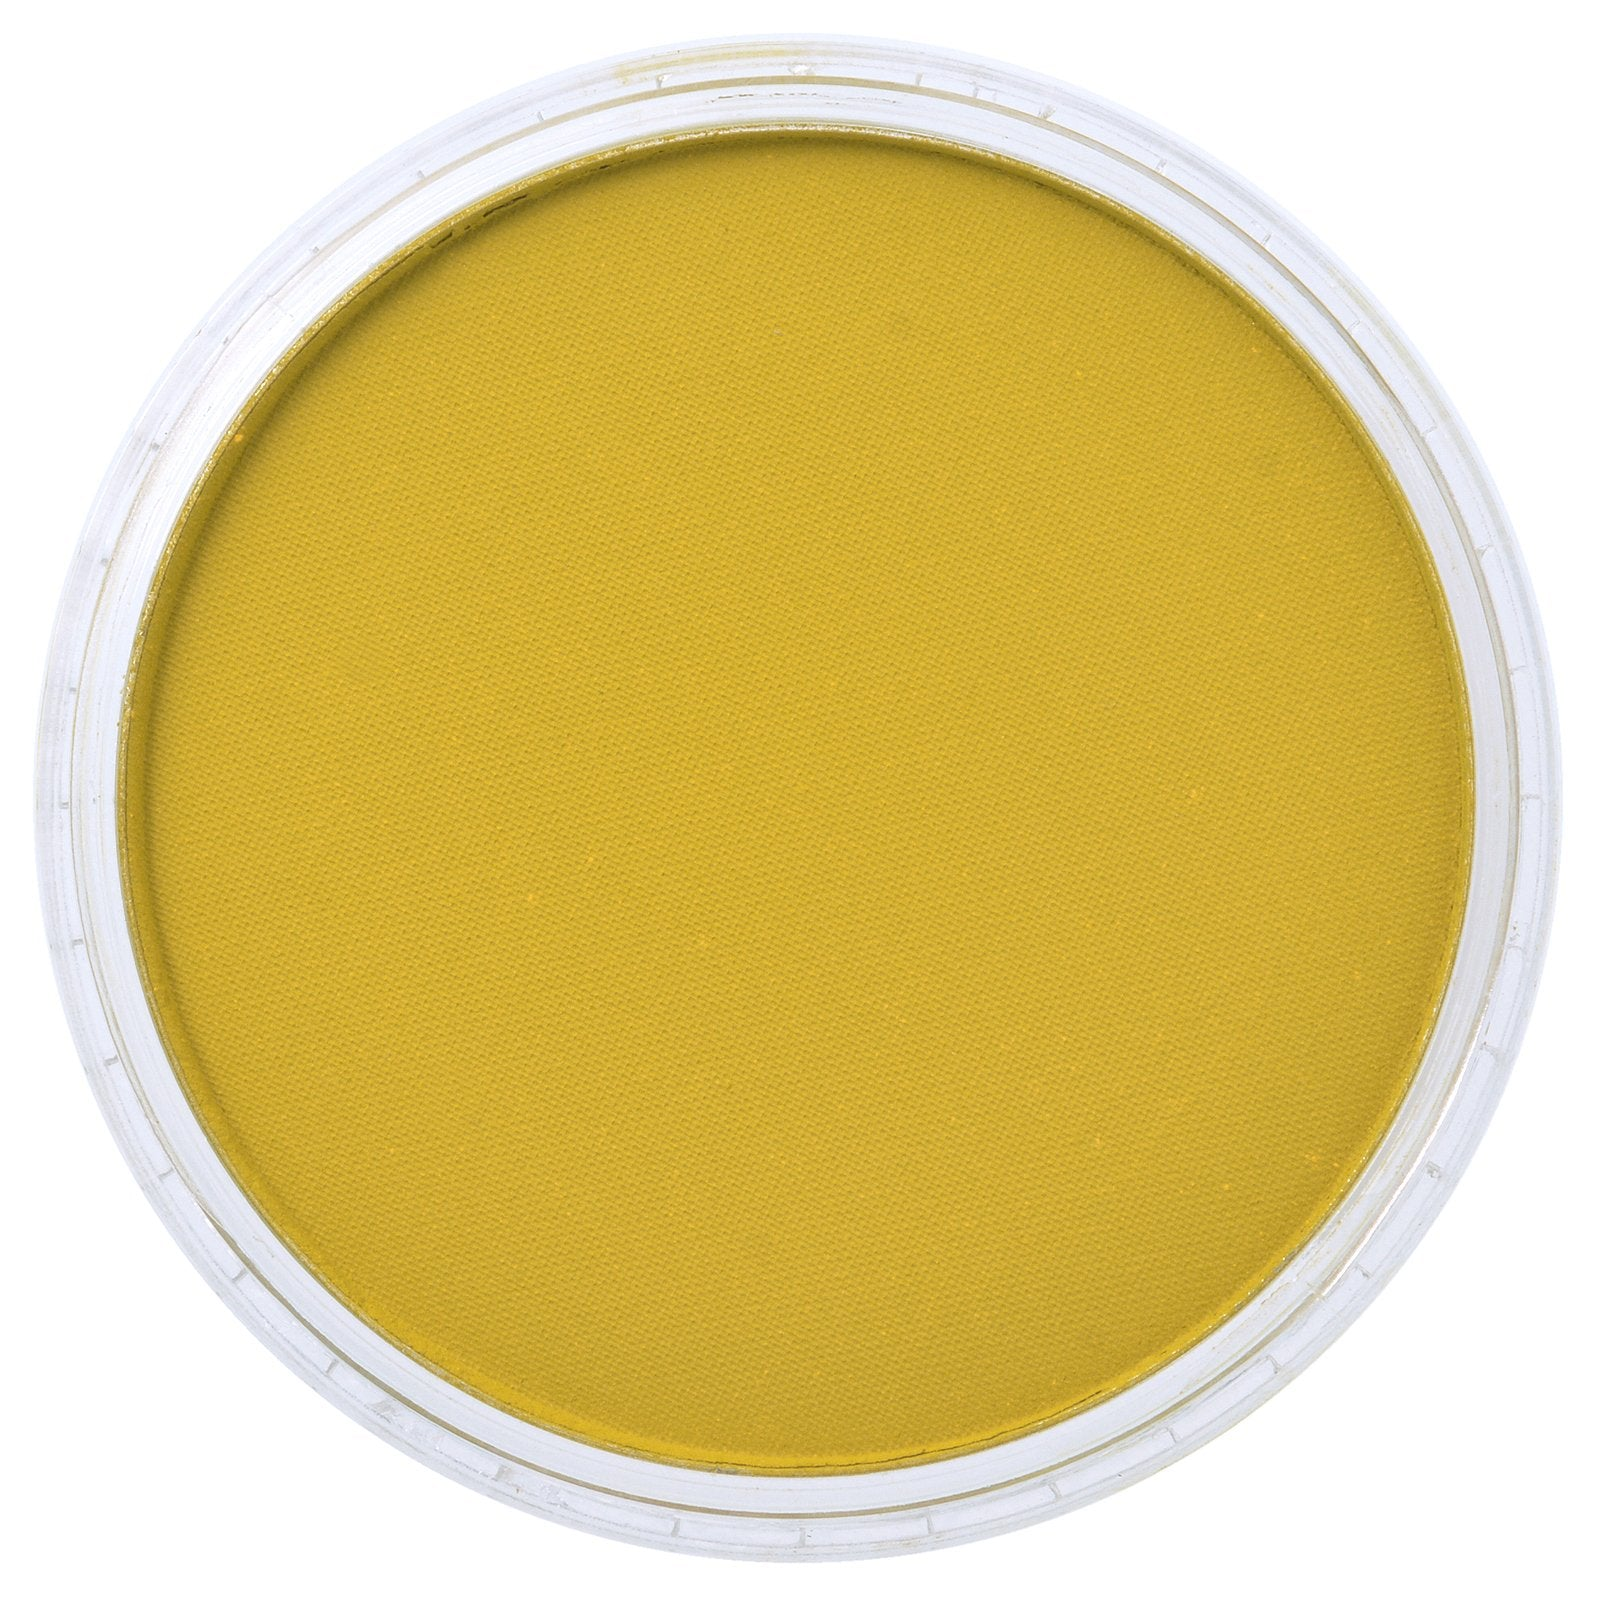 PanPastel - 250.3 DIARYLIDE YELLOW SHADE